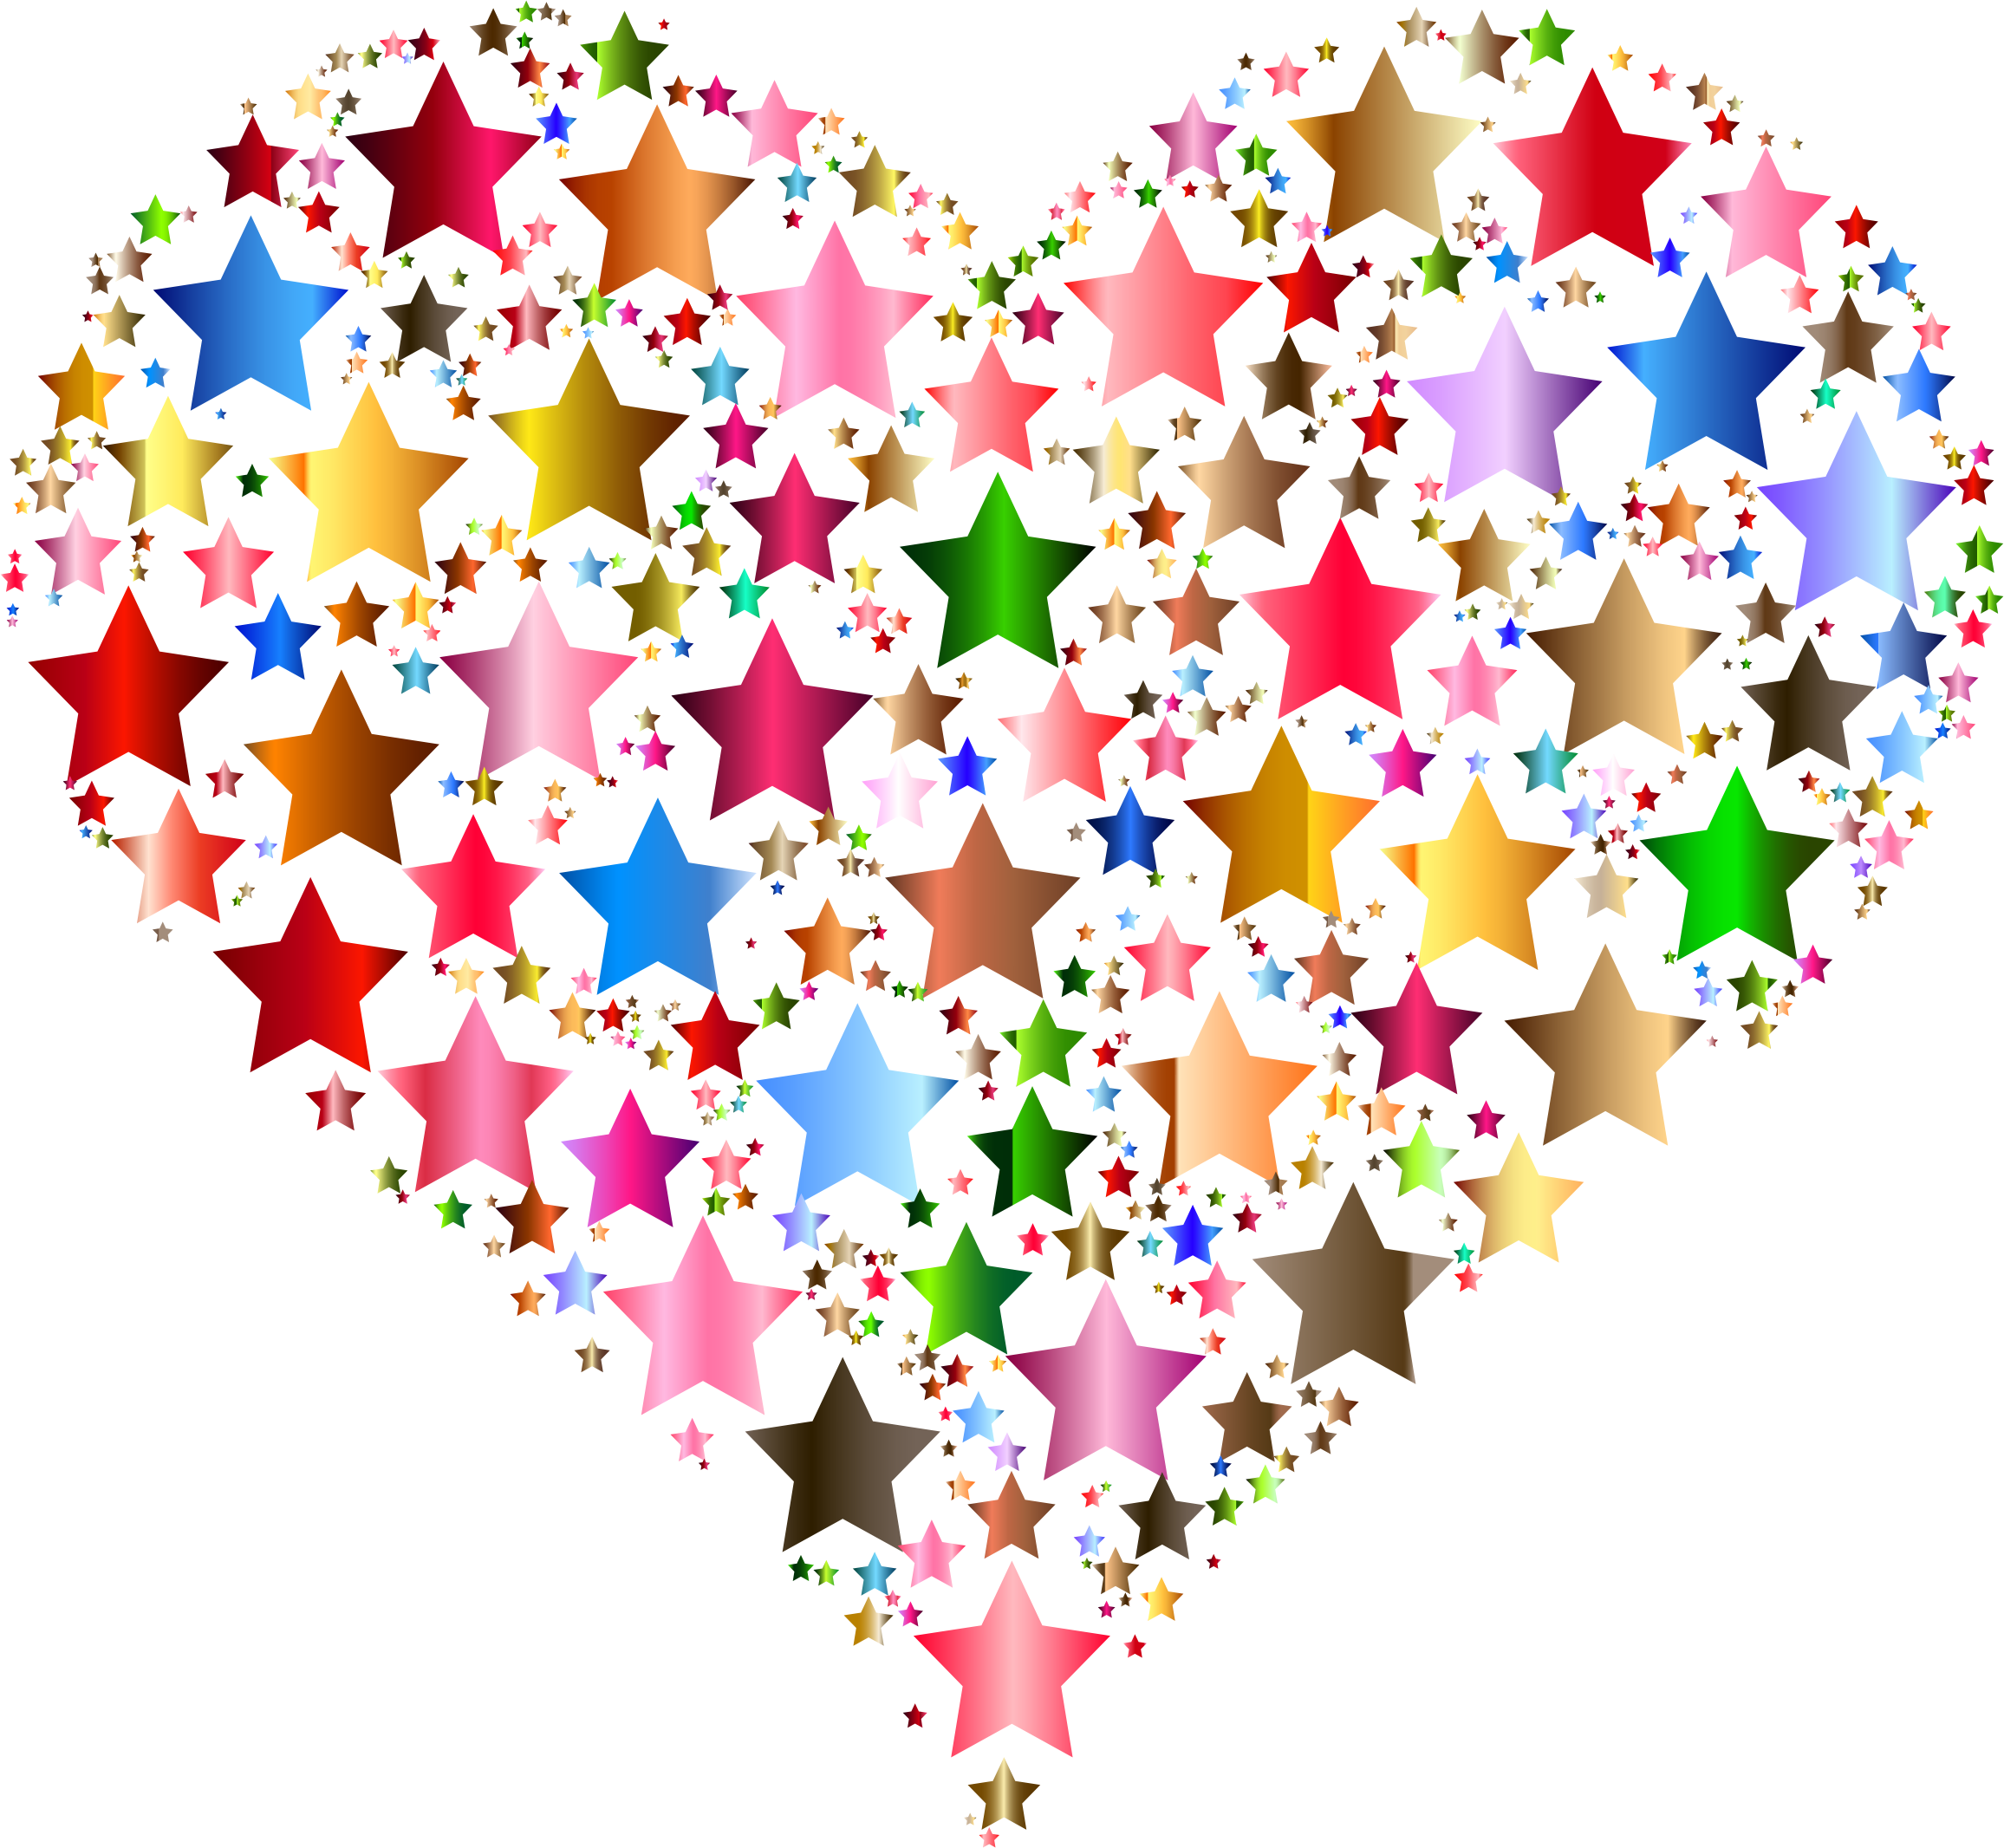 Stars in star clipart no background free colourful stars | colorful stars clipart png - Clipground | facebook ... free